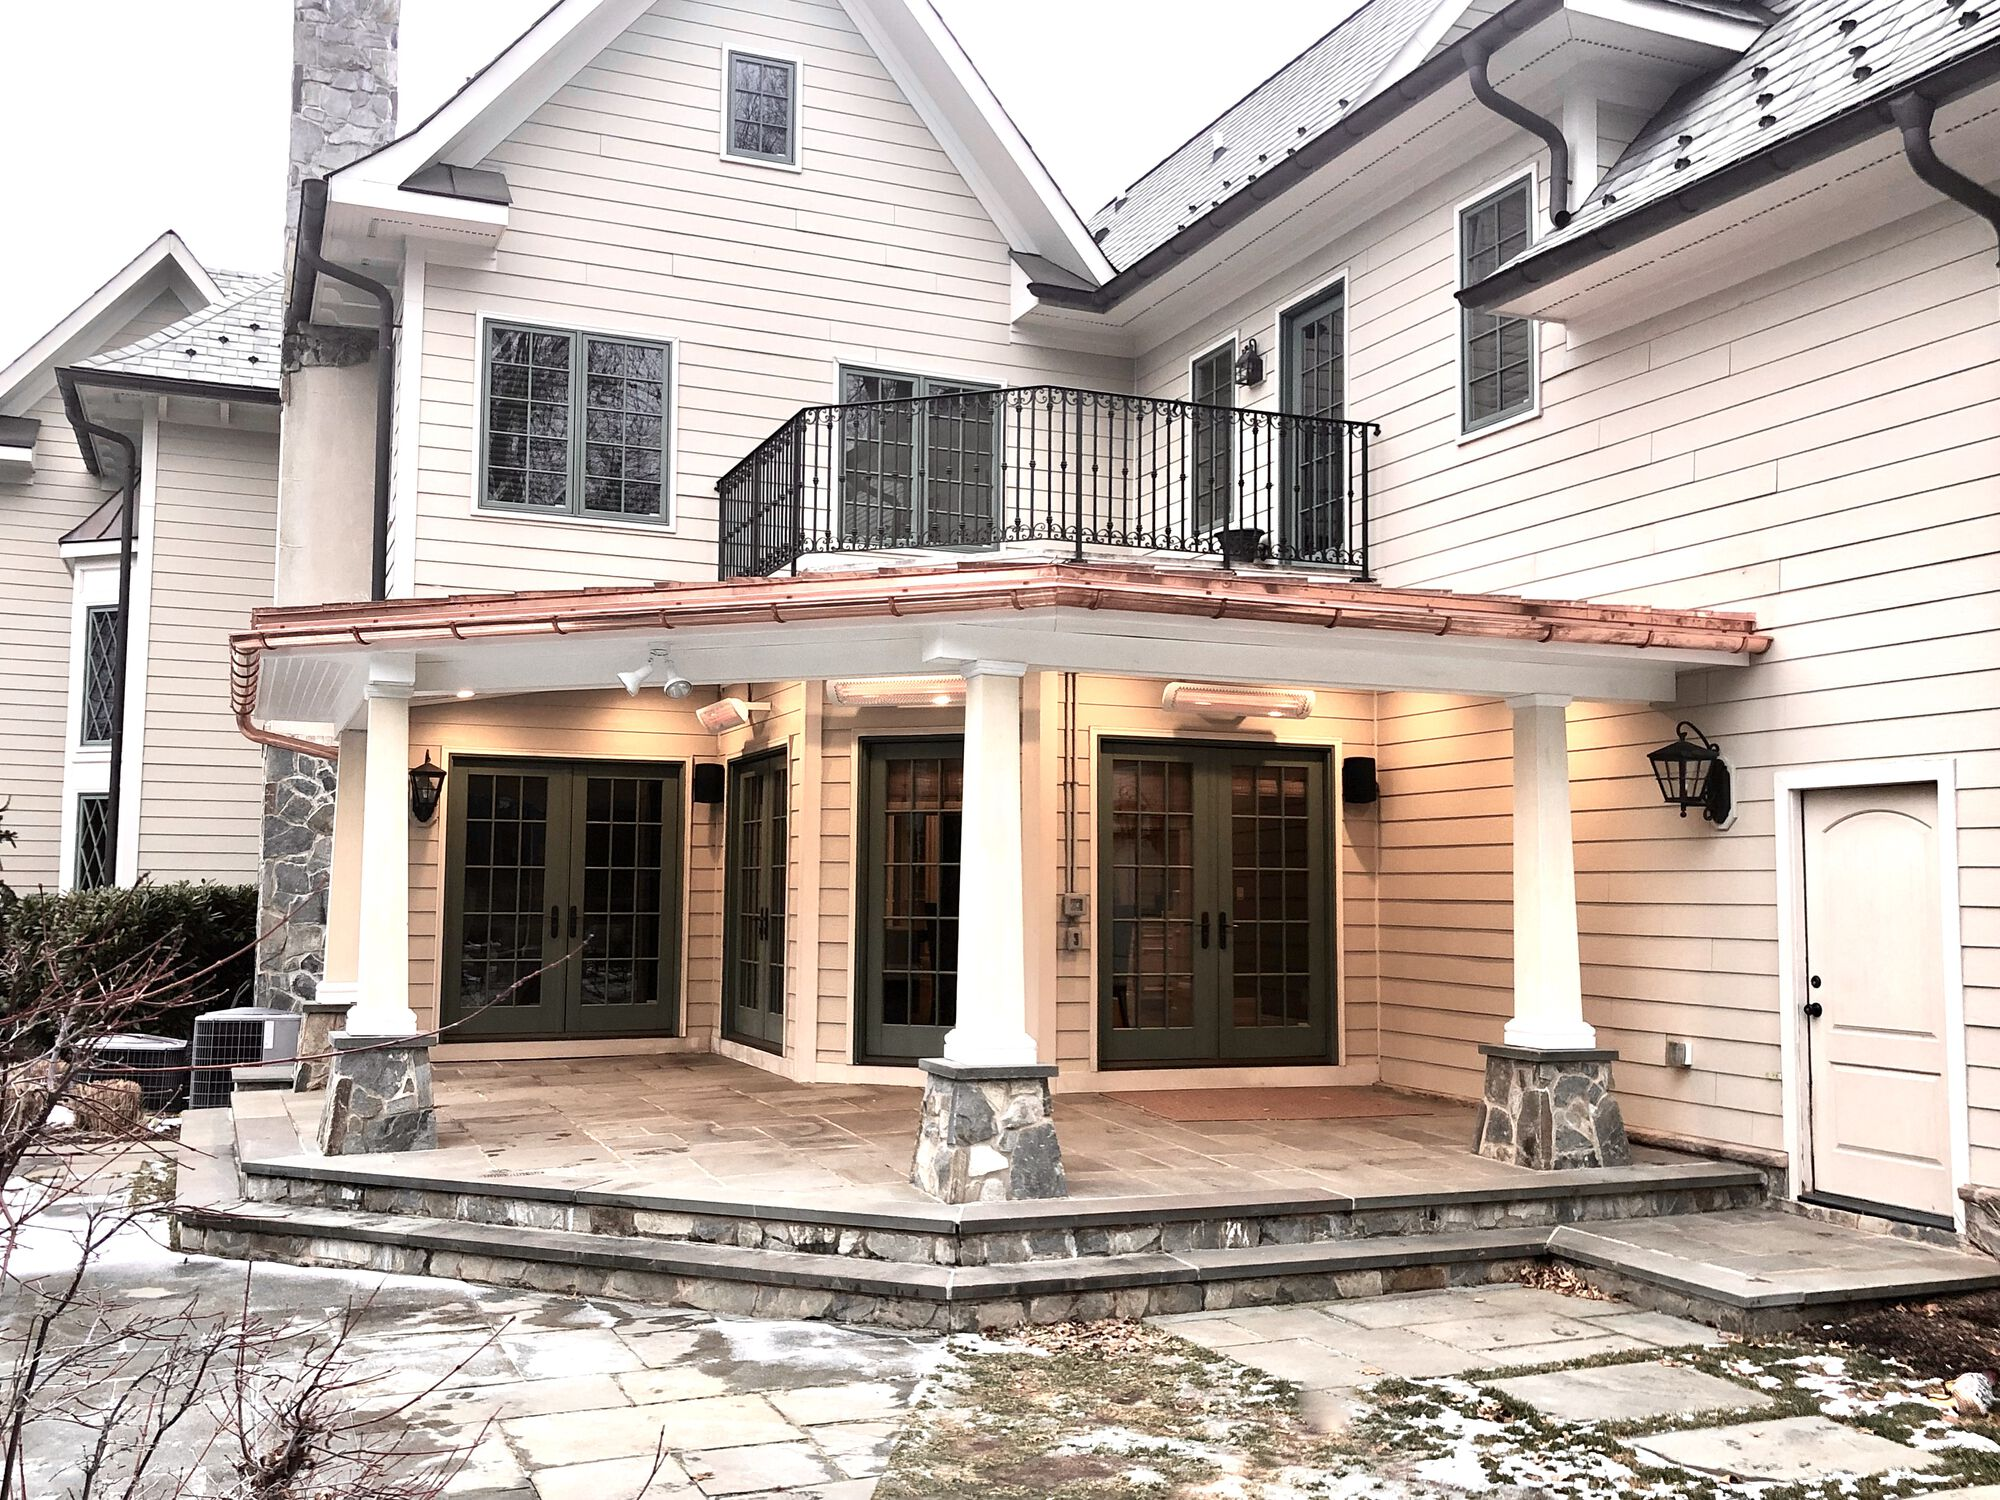 Covered Porch Build with Copper Roofing, HBG Fibercast Posts, Azek Trim, Lighting, Electric Radiant Heating in Madison, Morris County NJ